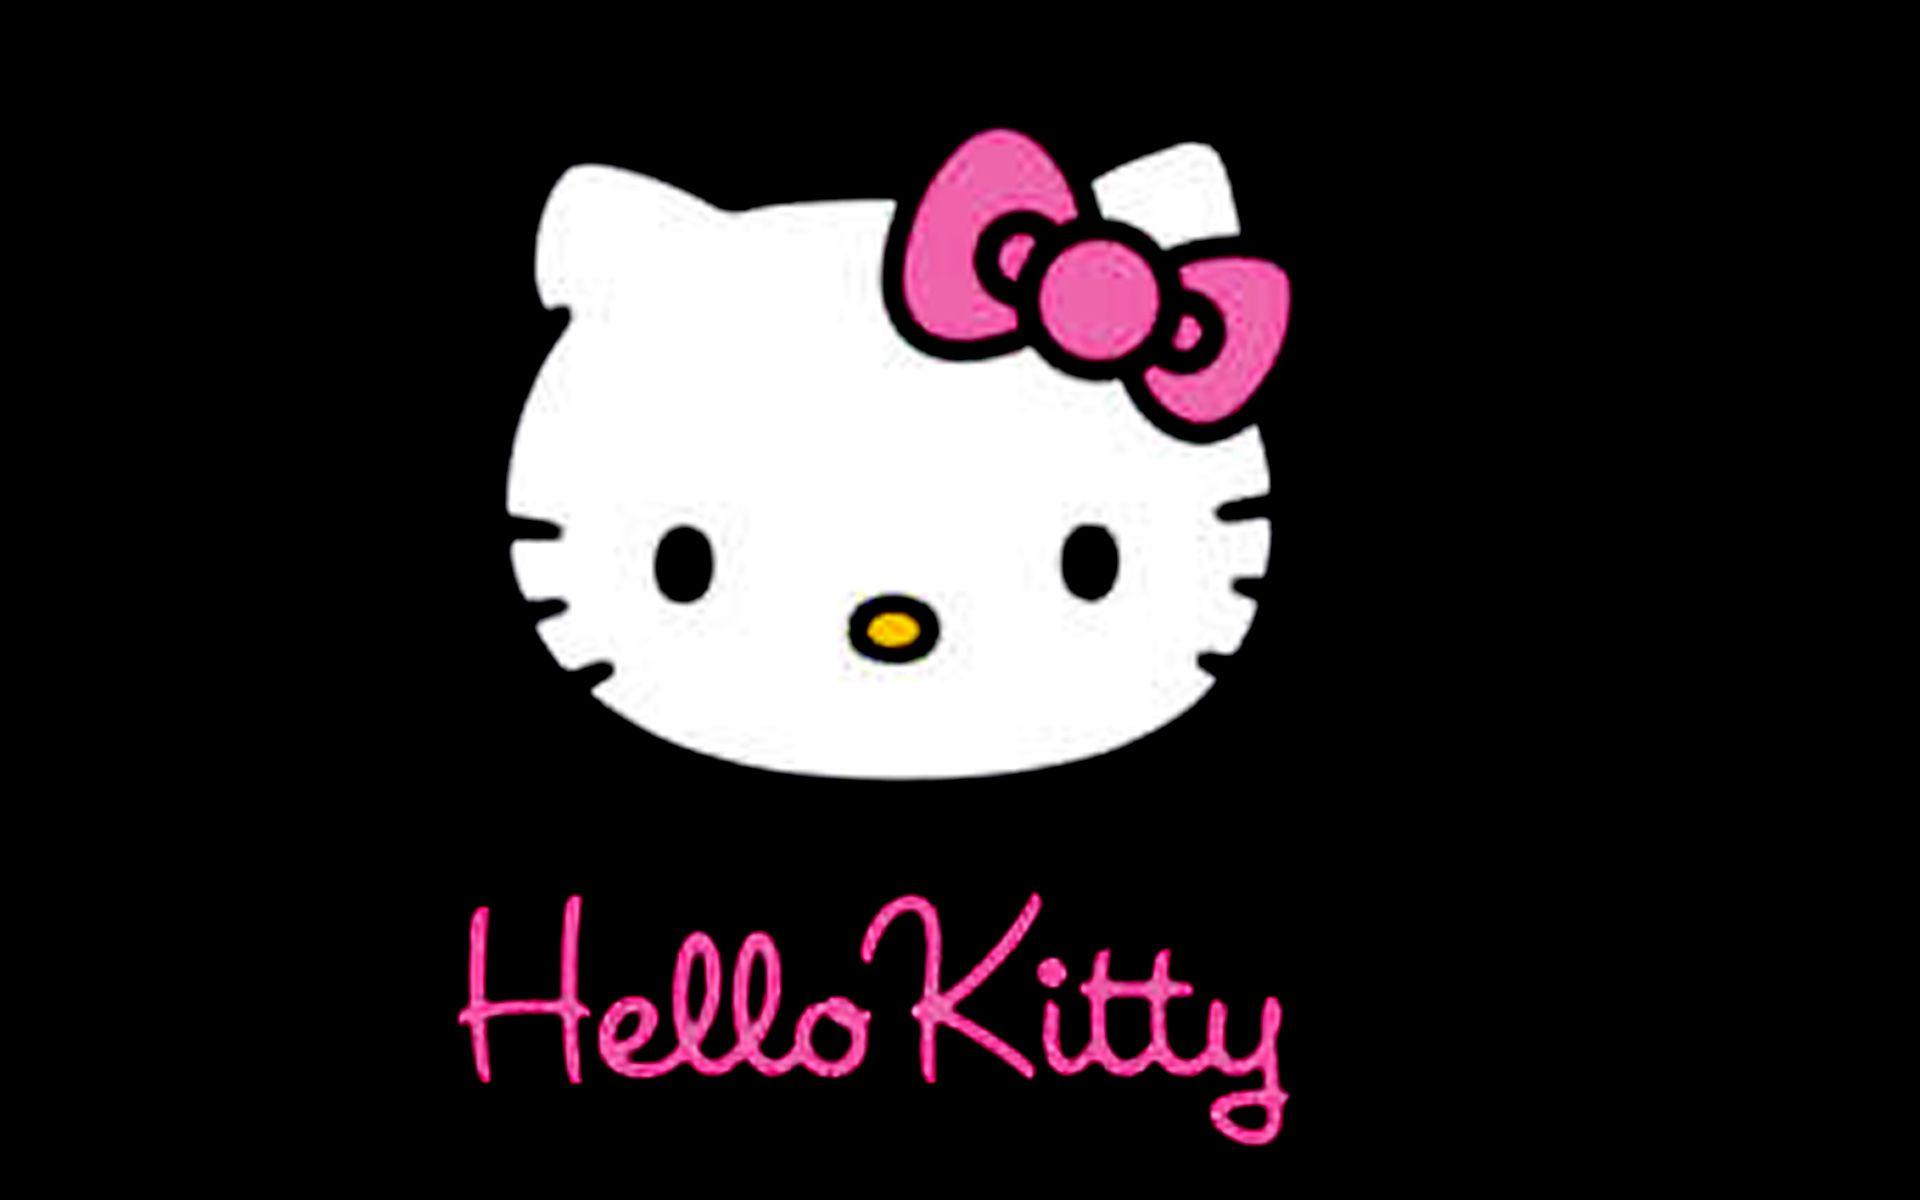 Hello kitty wallpapers pink and black wallpaper cave hello kitty black free download 270403 10432 wallpaper cool altavistaventures Images